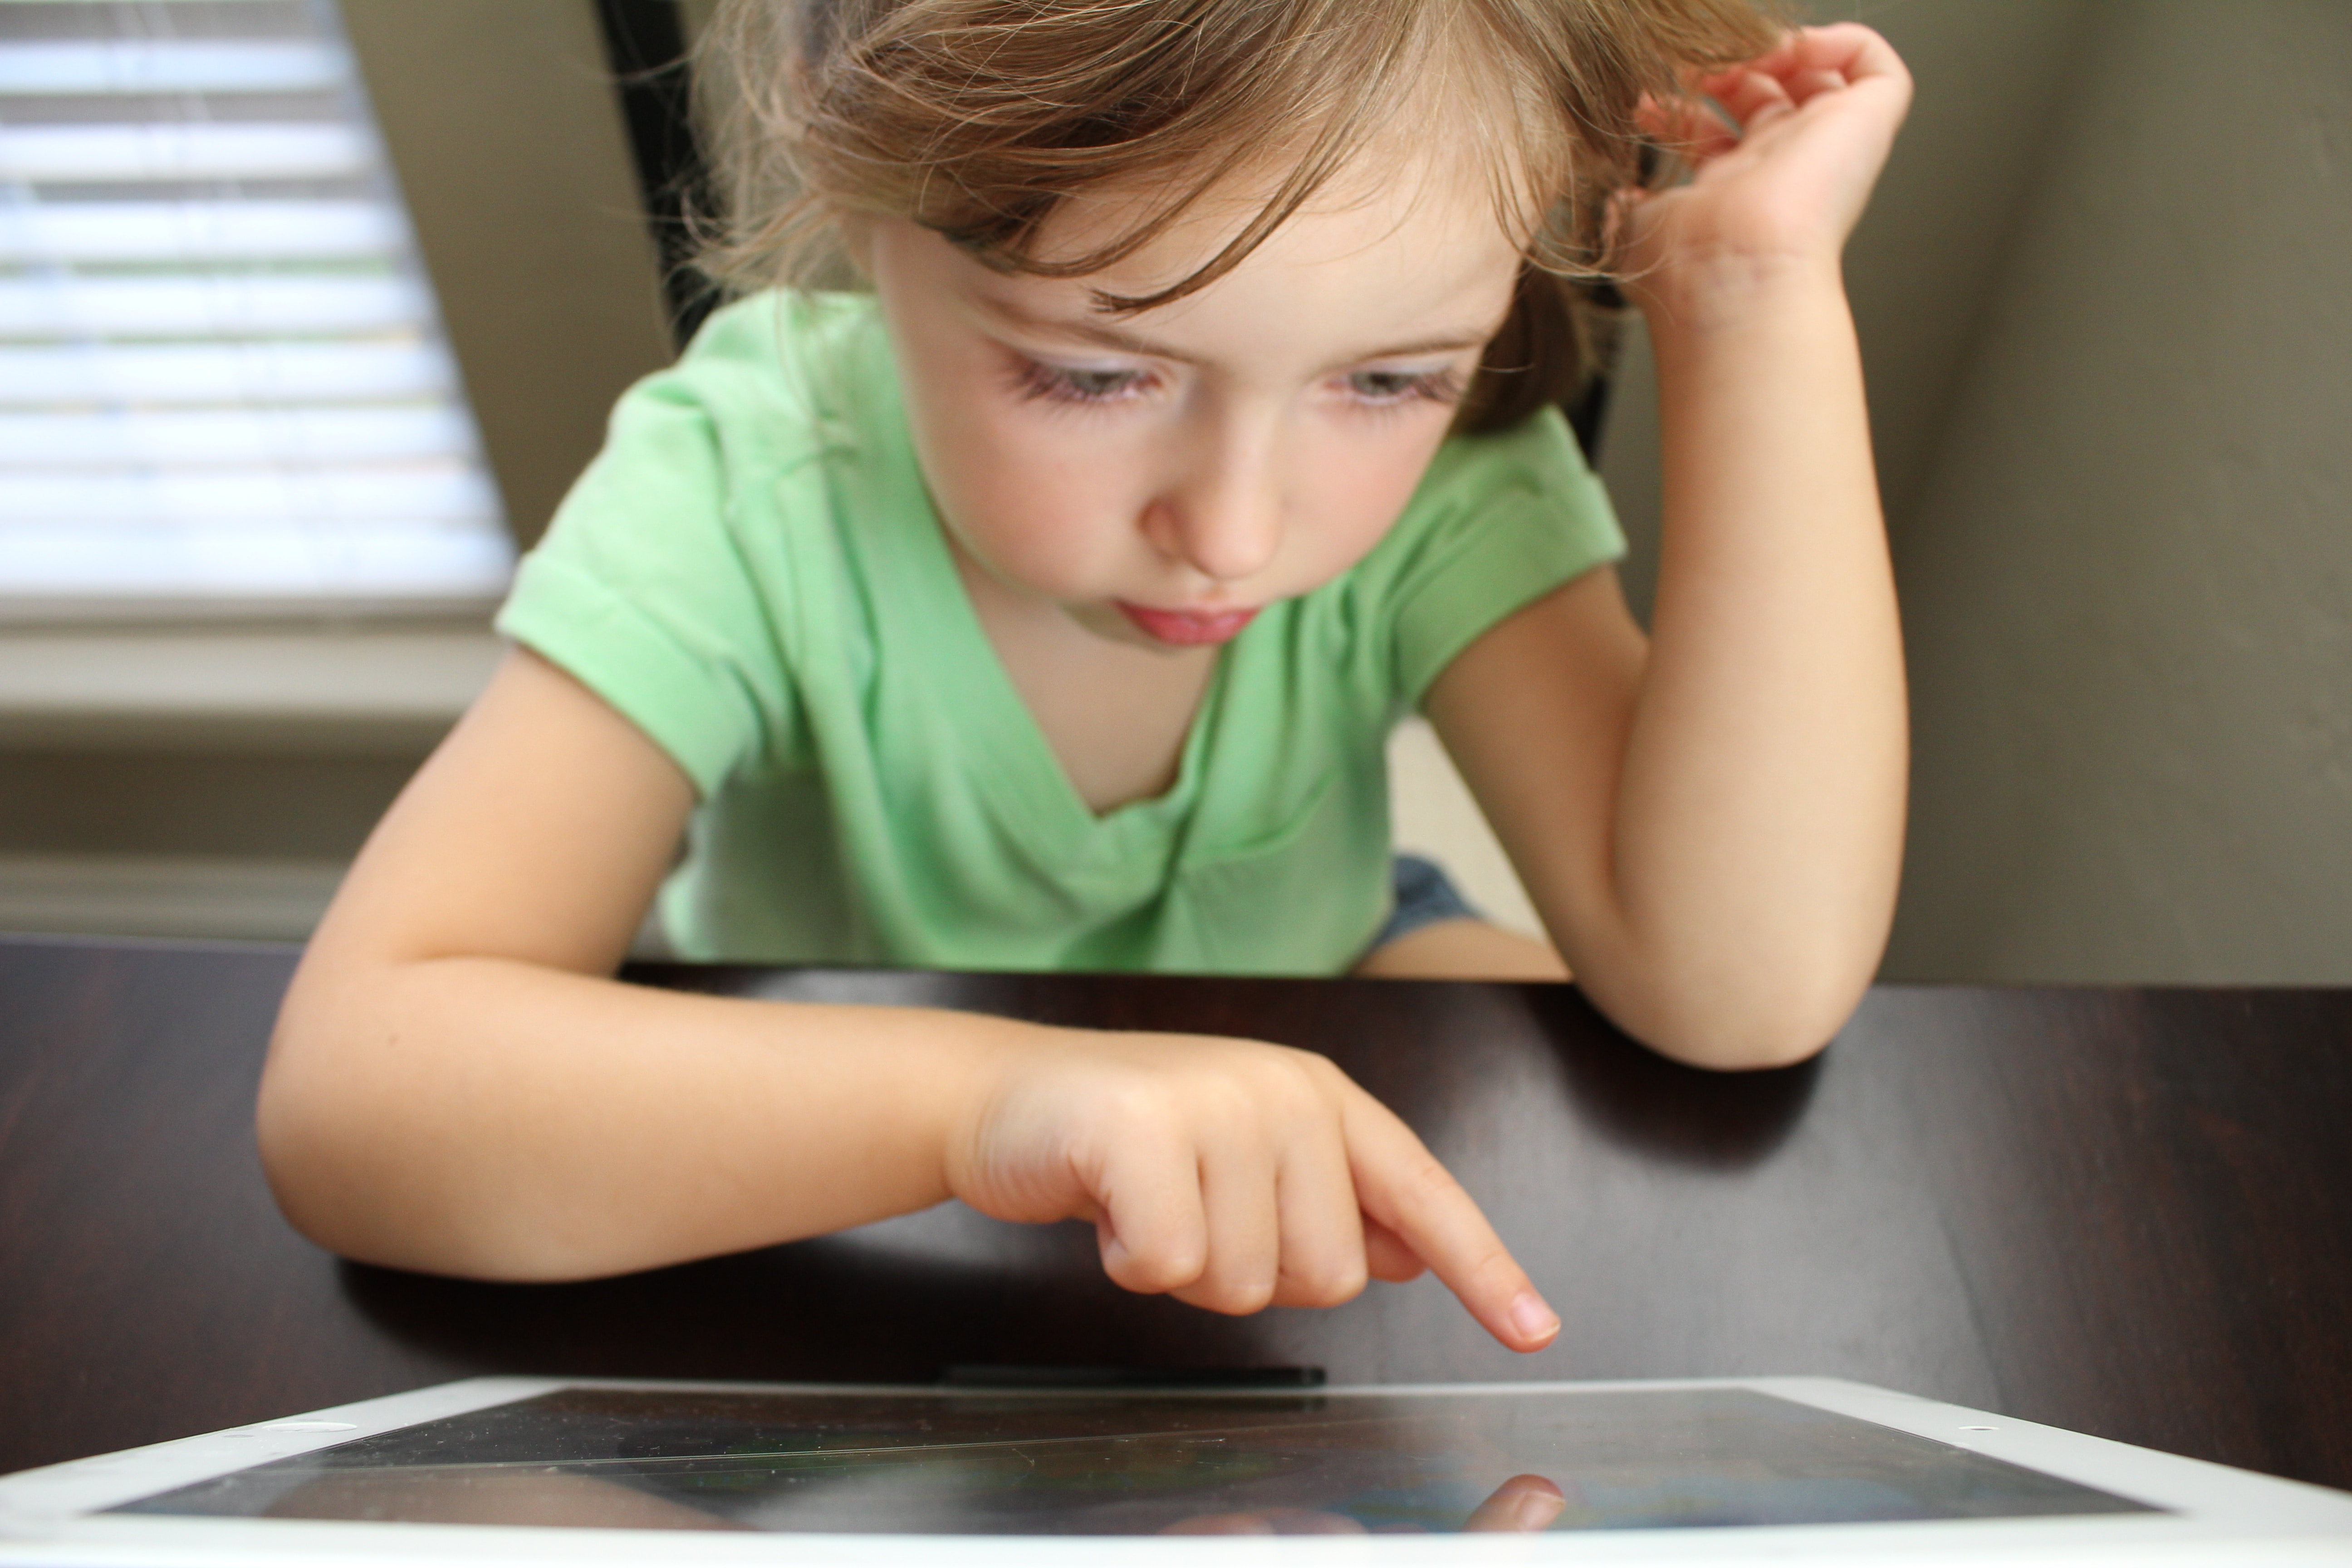 Children 'at risk of gambling addiction' through in-app purchases